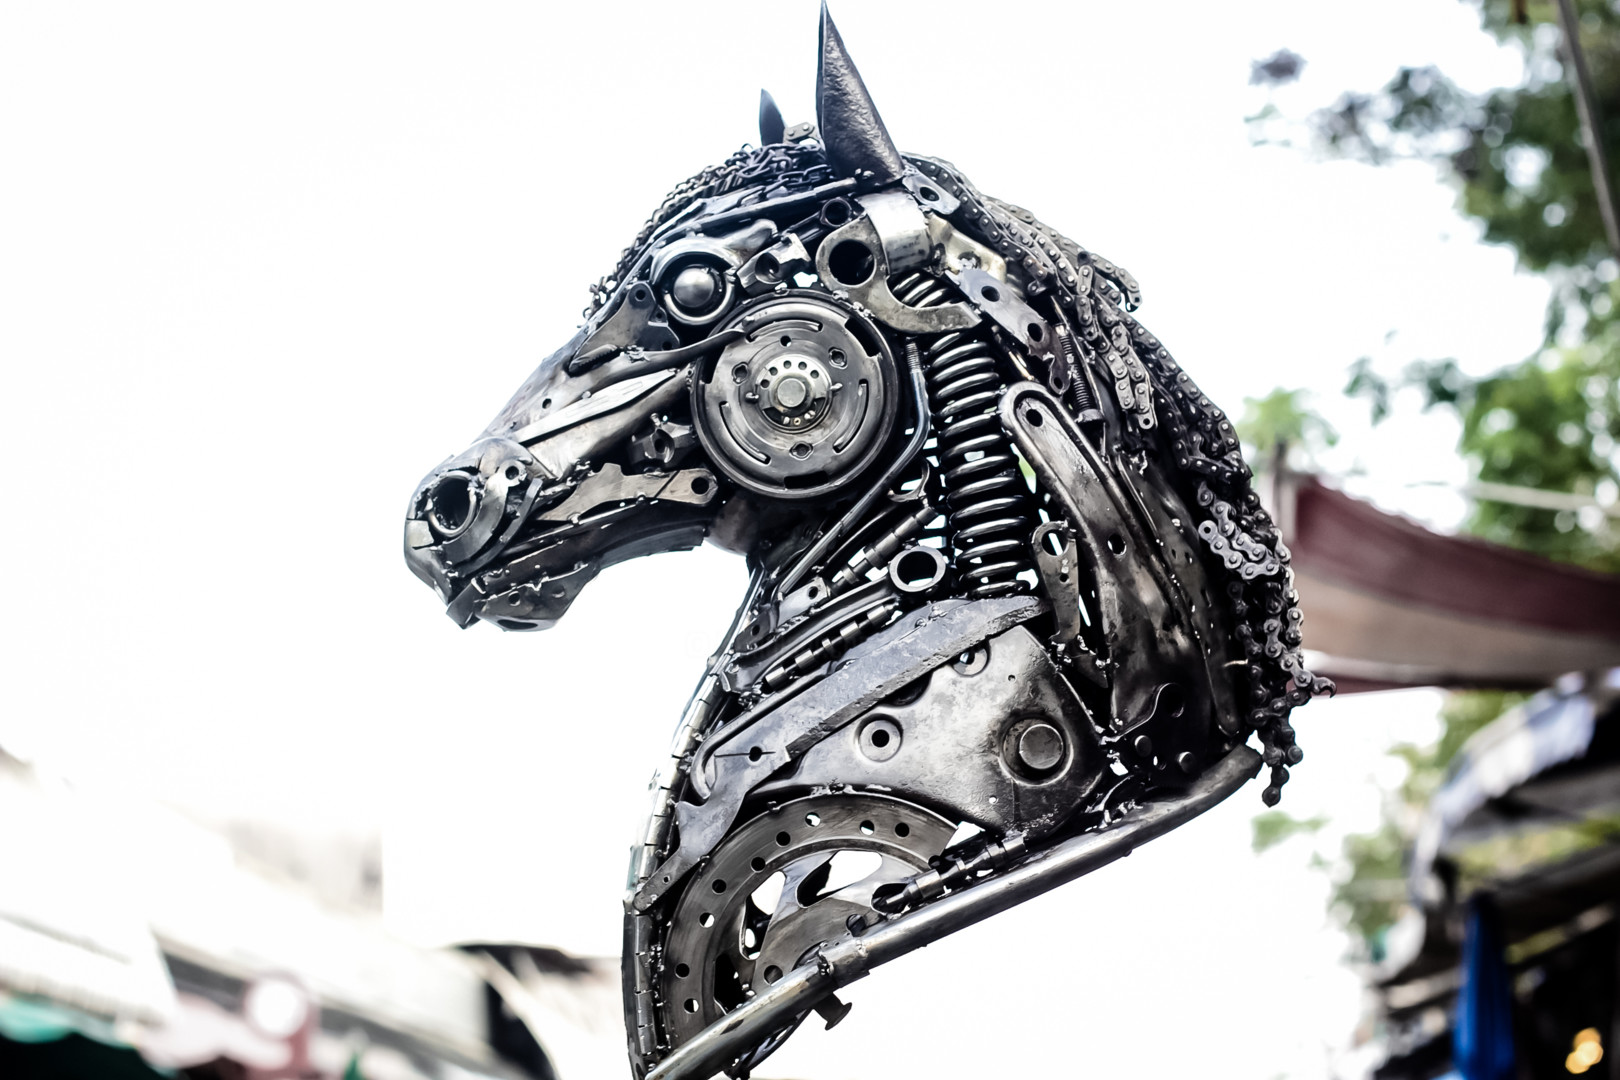 Horse Head Metal Sculpture Sculpture By Mari9art Metal Art Sculpture Artmajeur